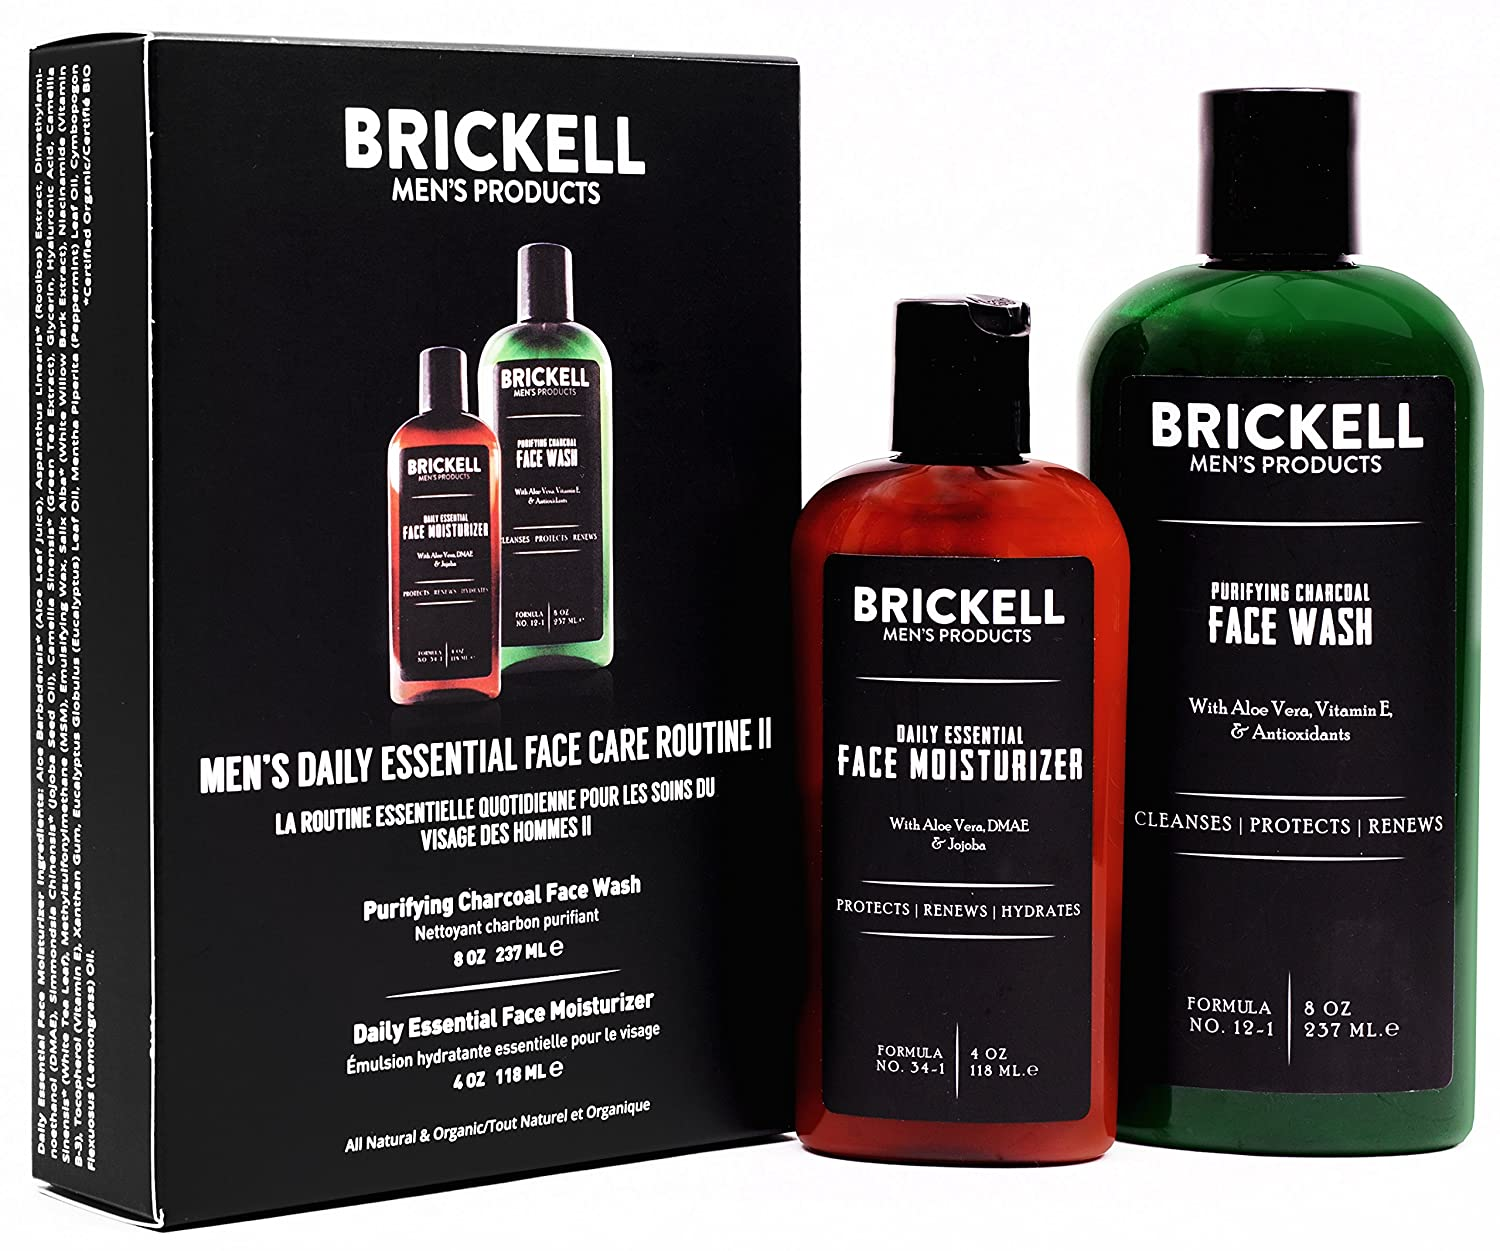 Brickell Men's Daily Essential Face Care Routine II - Face Wash & Face Moisturizer - Natural & Organic Brickell Men's Products FACERTN2